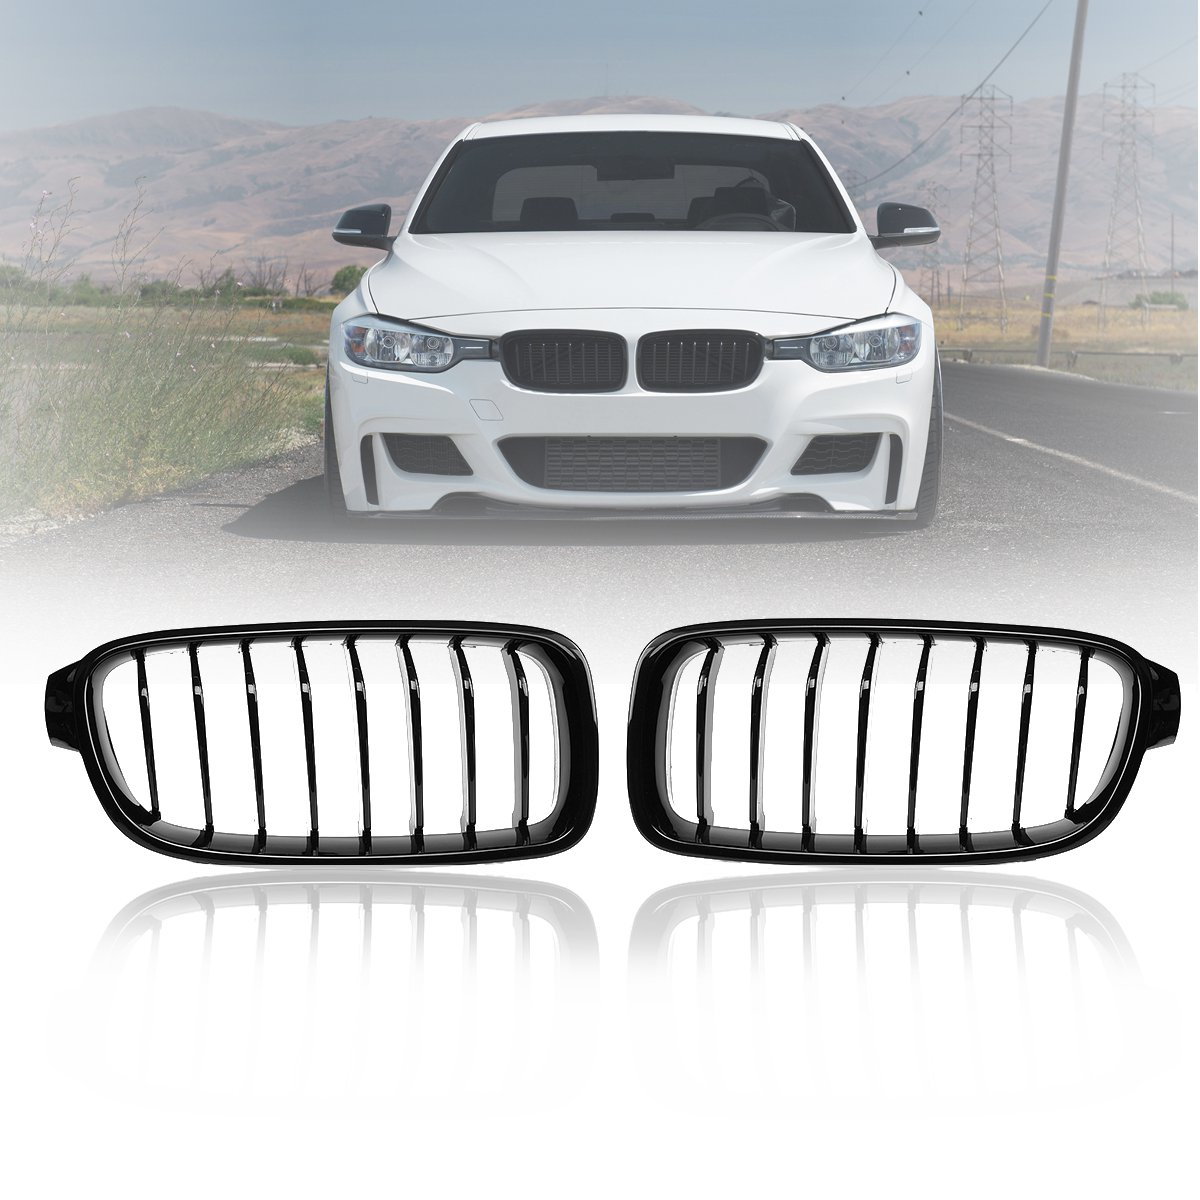 1 Pair Gloss Black Car Decorative Accessory Racing Grill Front Kidney Grille for BMW 3 Series F30 F31 F35 F80 2012-2017 1 pair gloss black front kidney grilles grill car styling racing grills replacement grilles for bmw f30 f31 f35 320i 2012